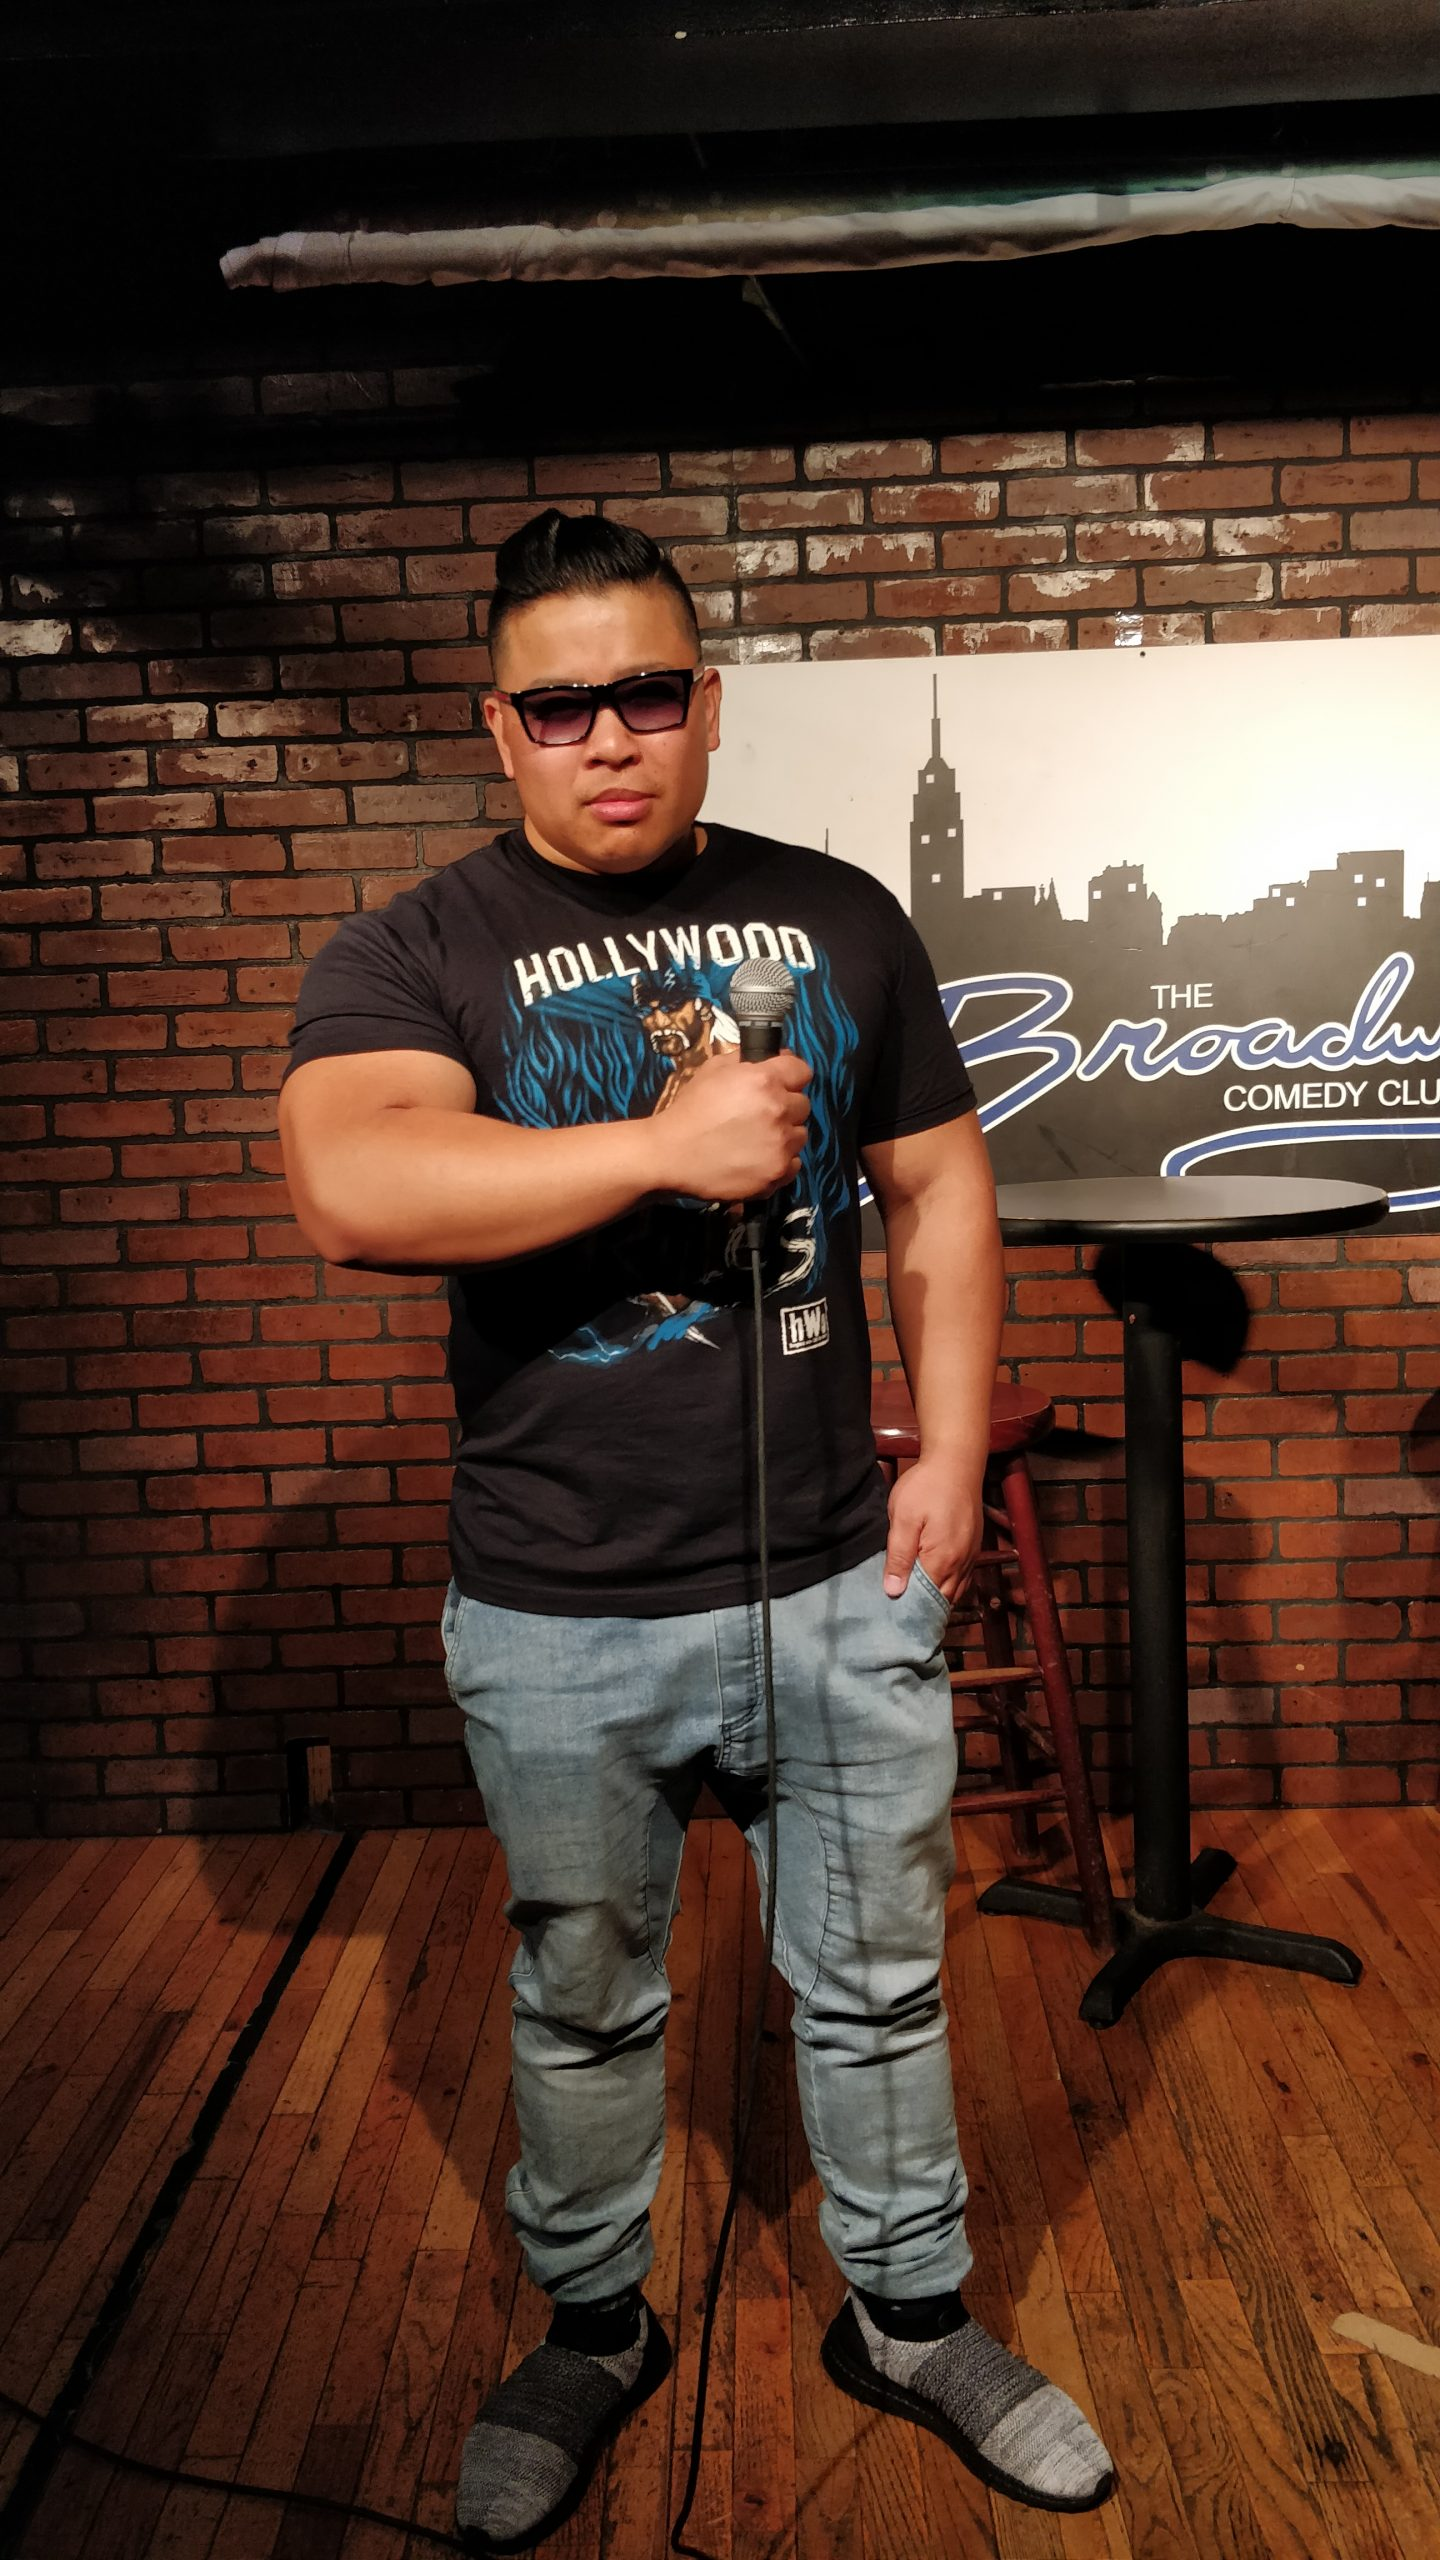 Wayne Lapasa on stage at the Broadway Comedy Club